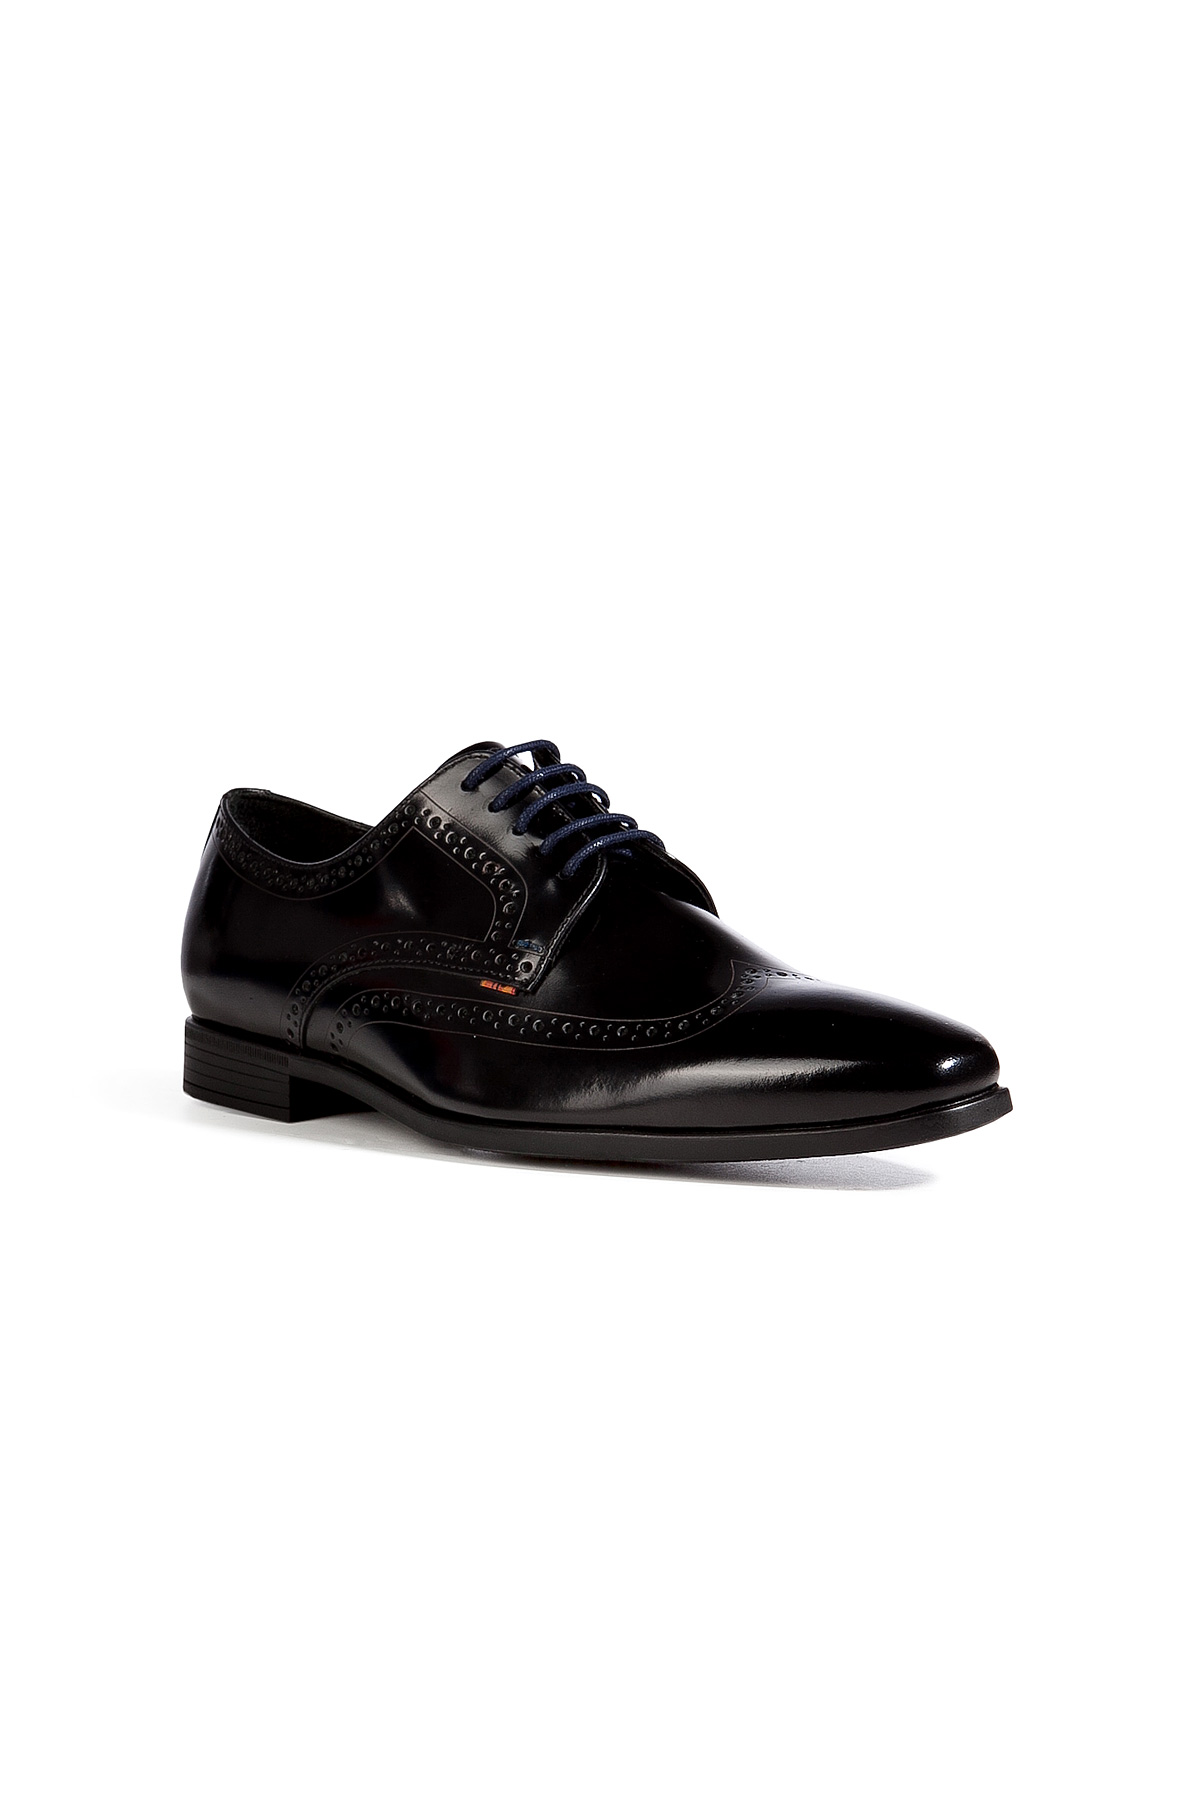 Macey Shoes Men